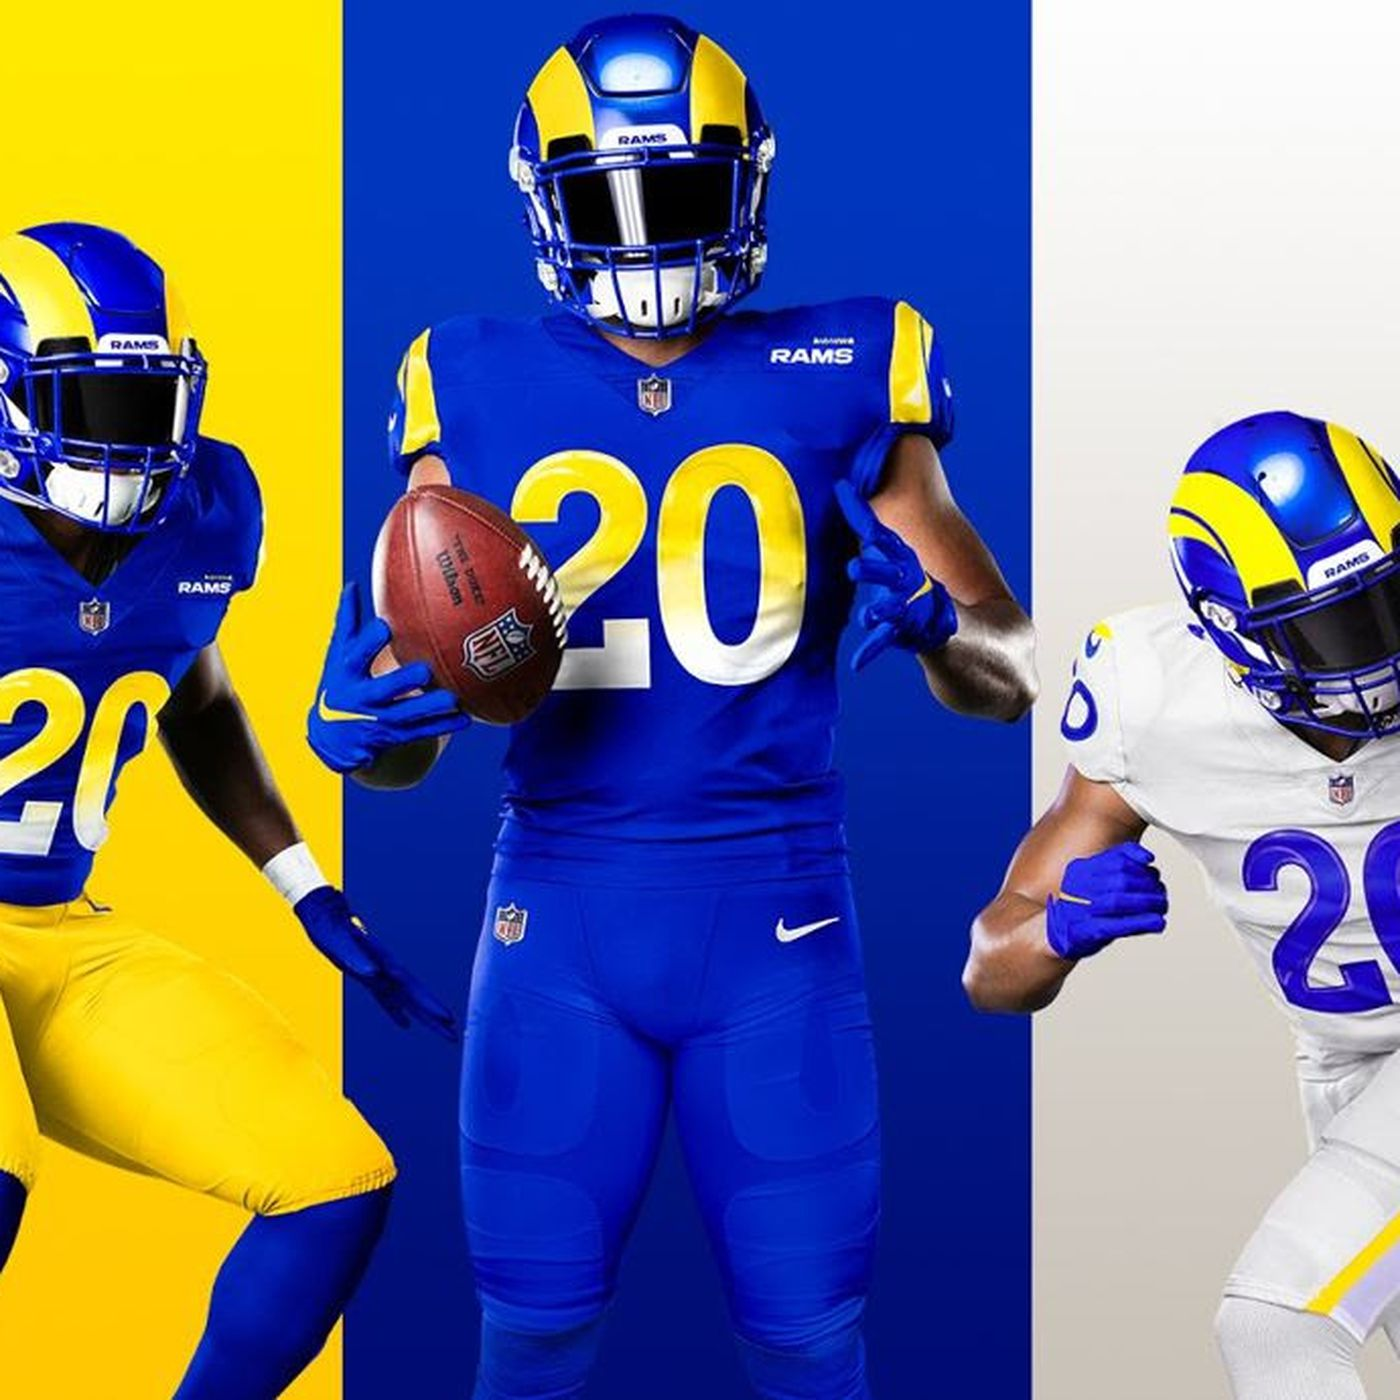 what la rams have to say about their new uniforms turf show times what la rams have to say about their